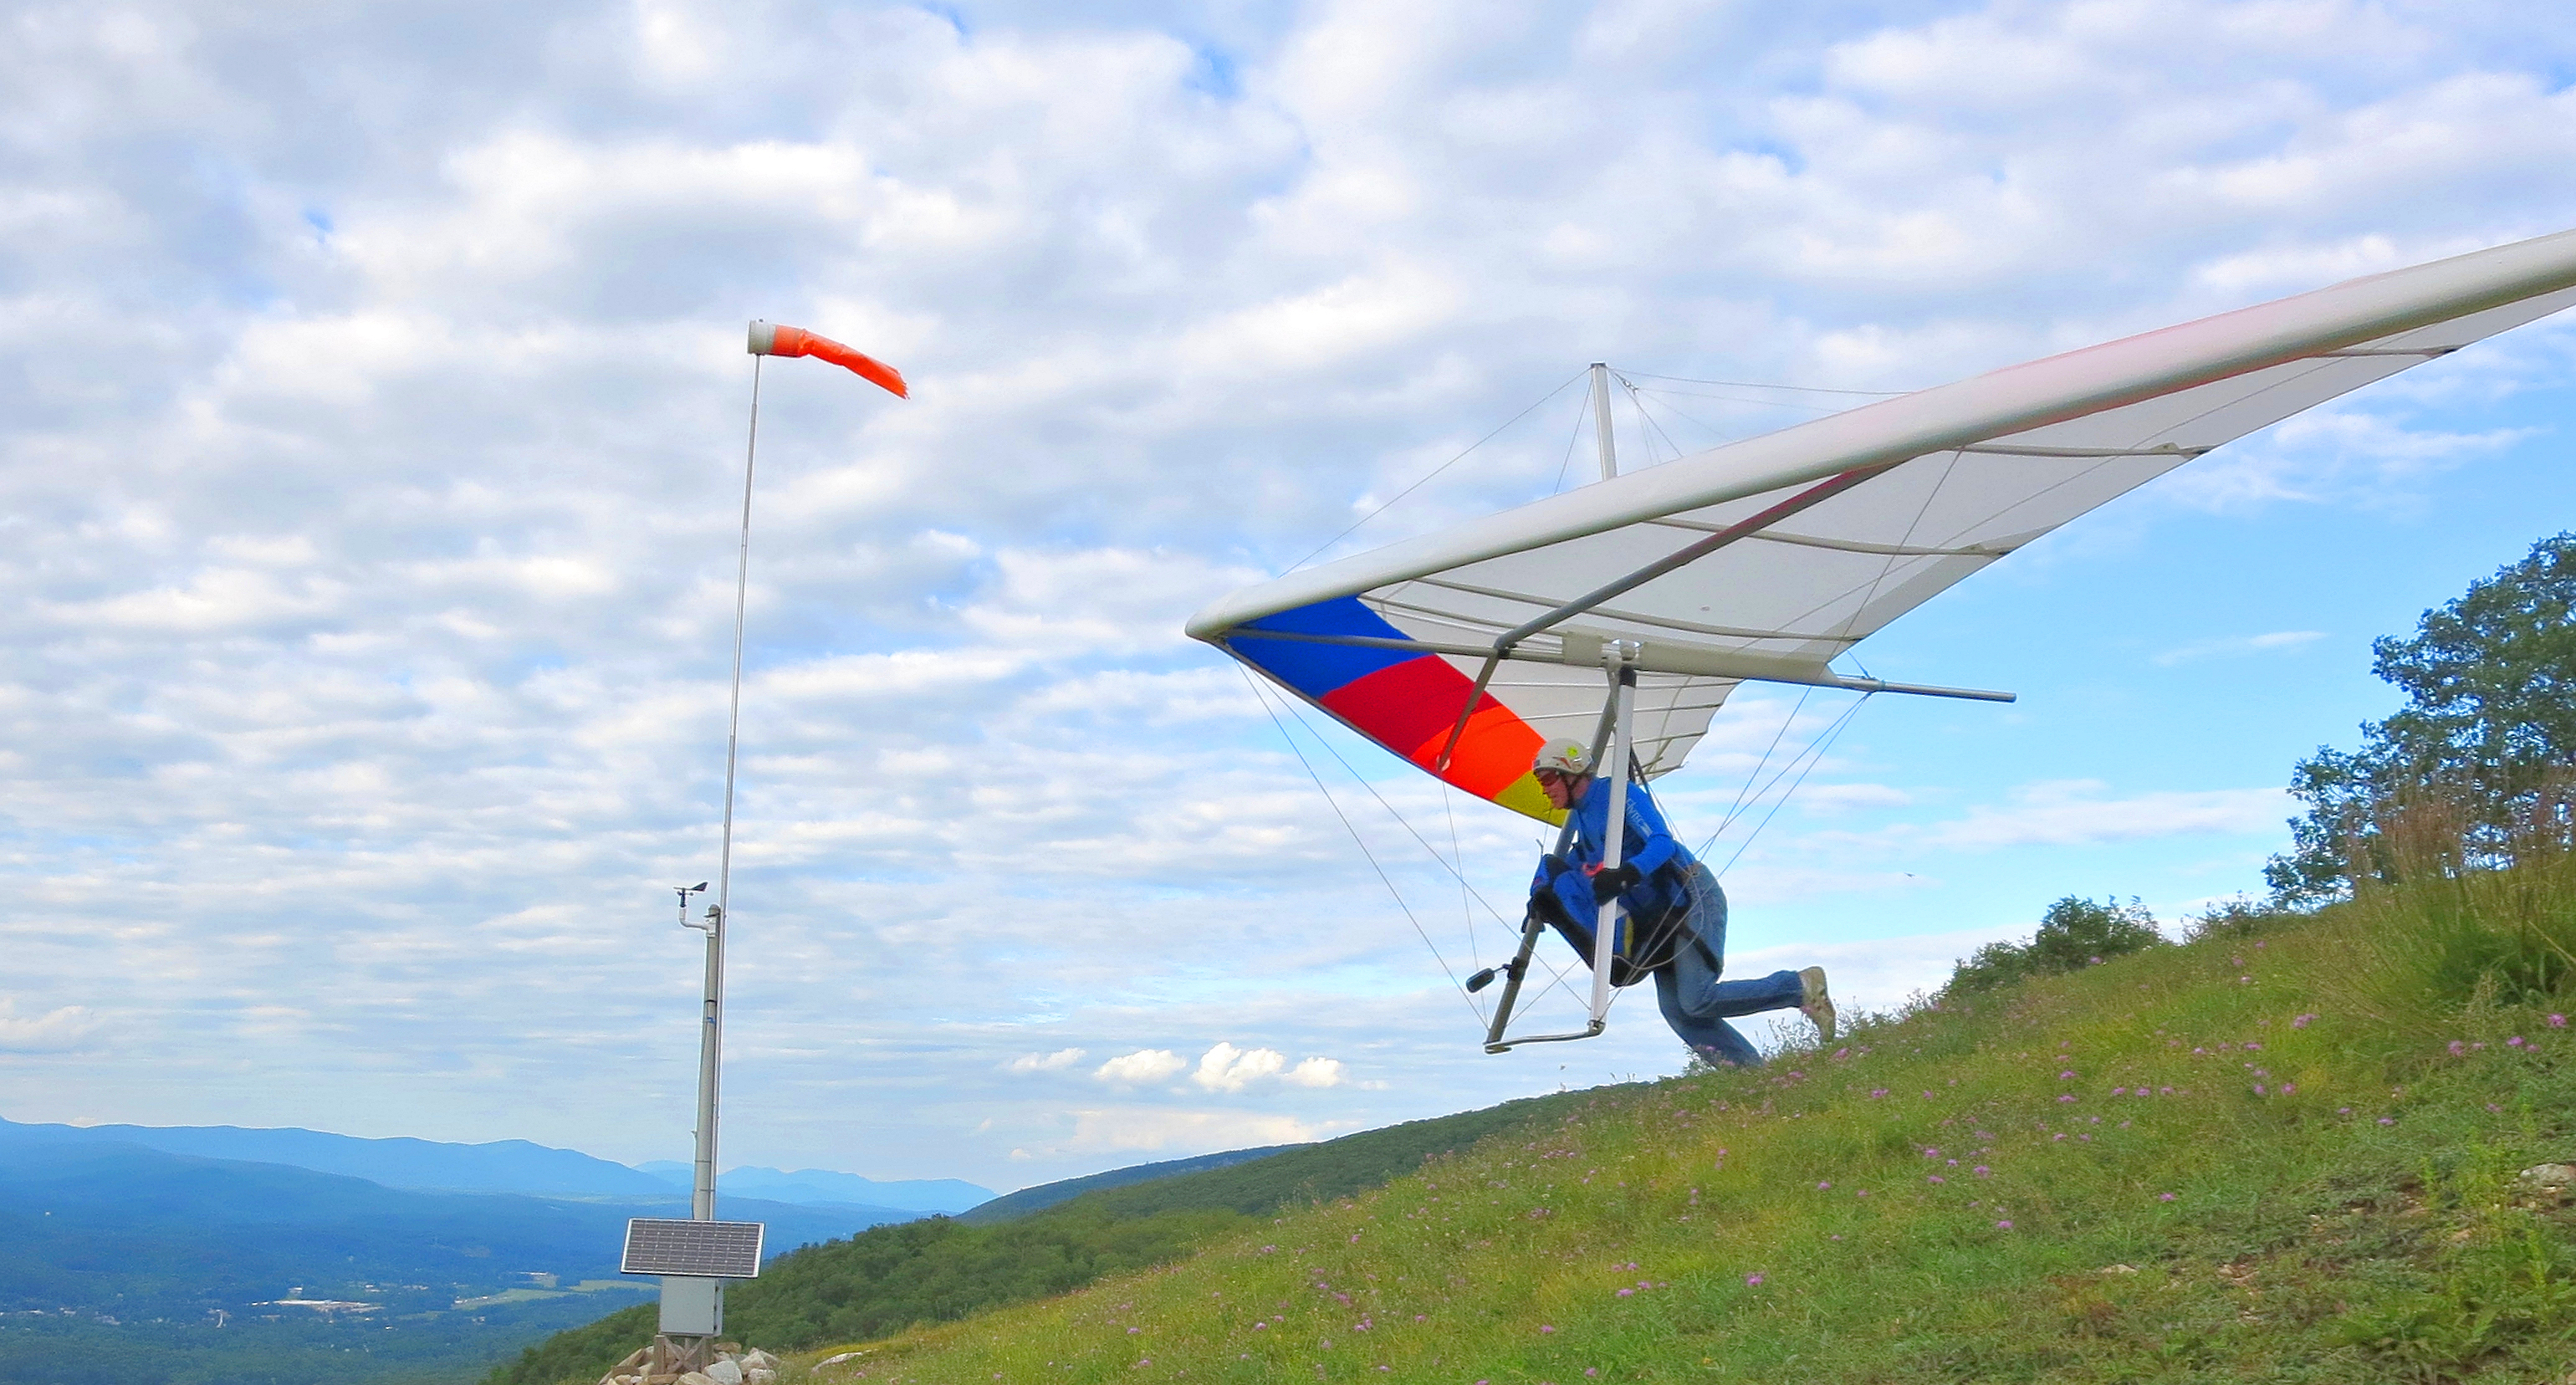 Gliders For Sale >> Fly High Hang Gliding